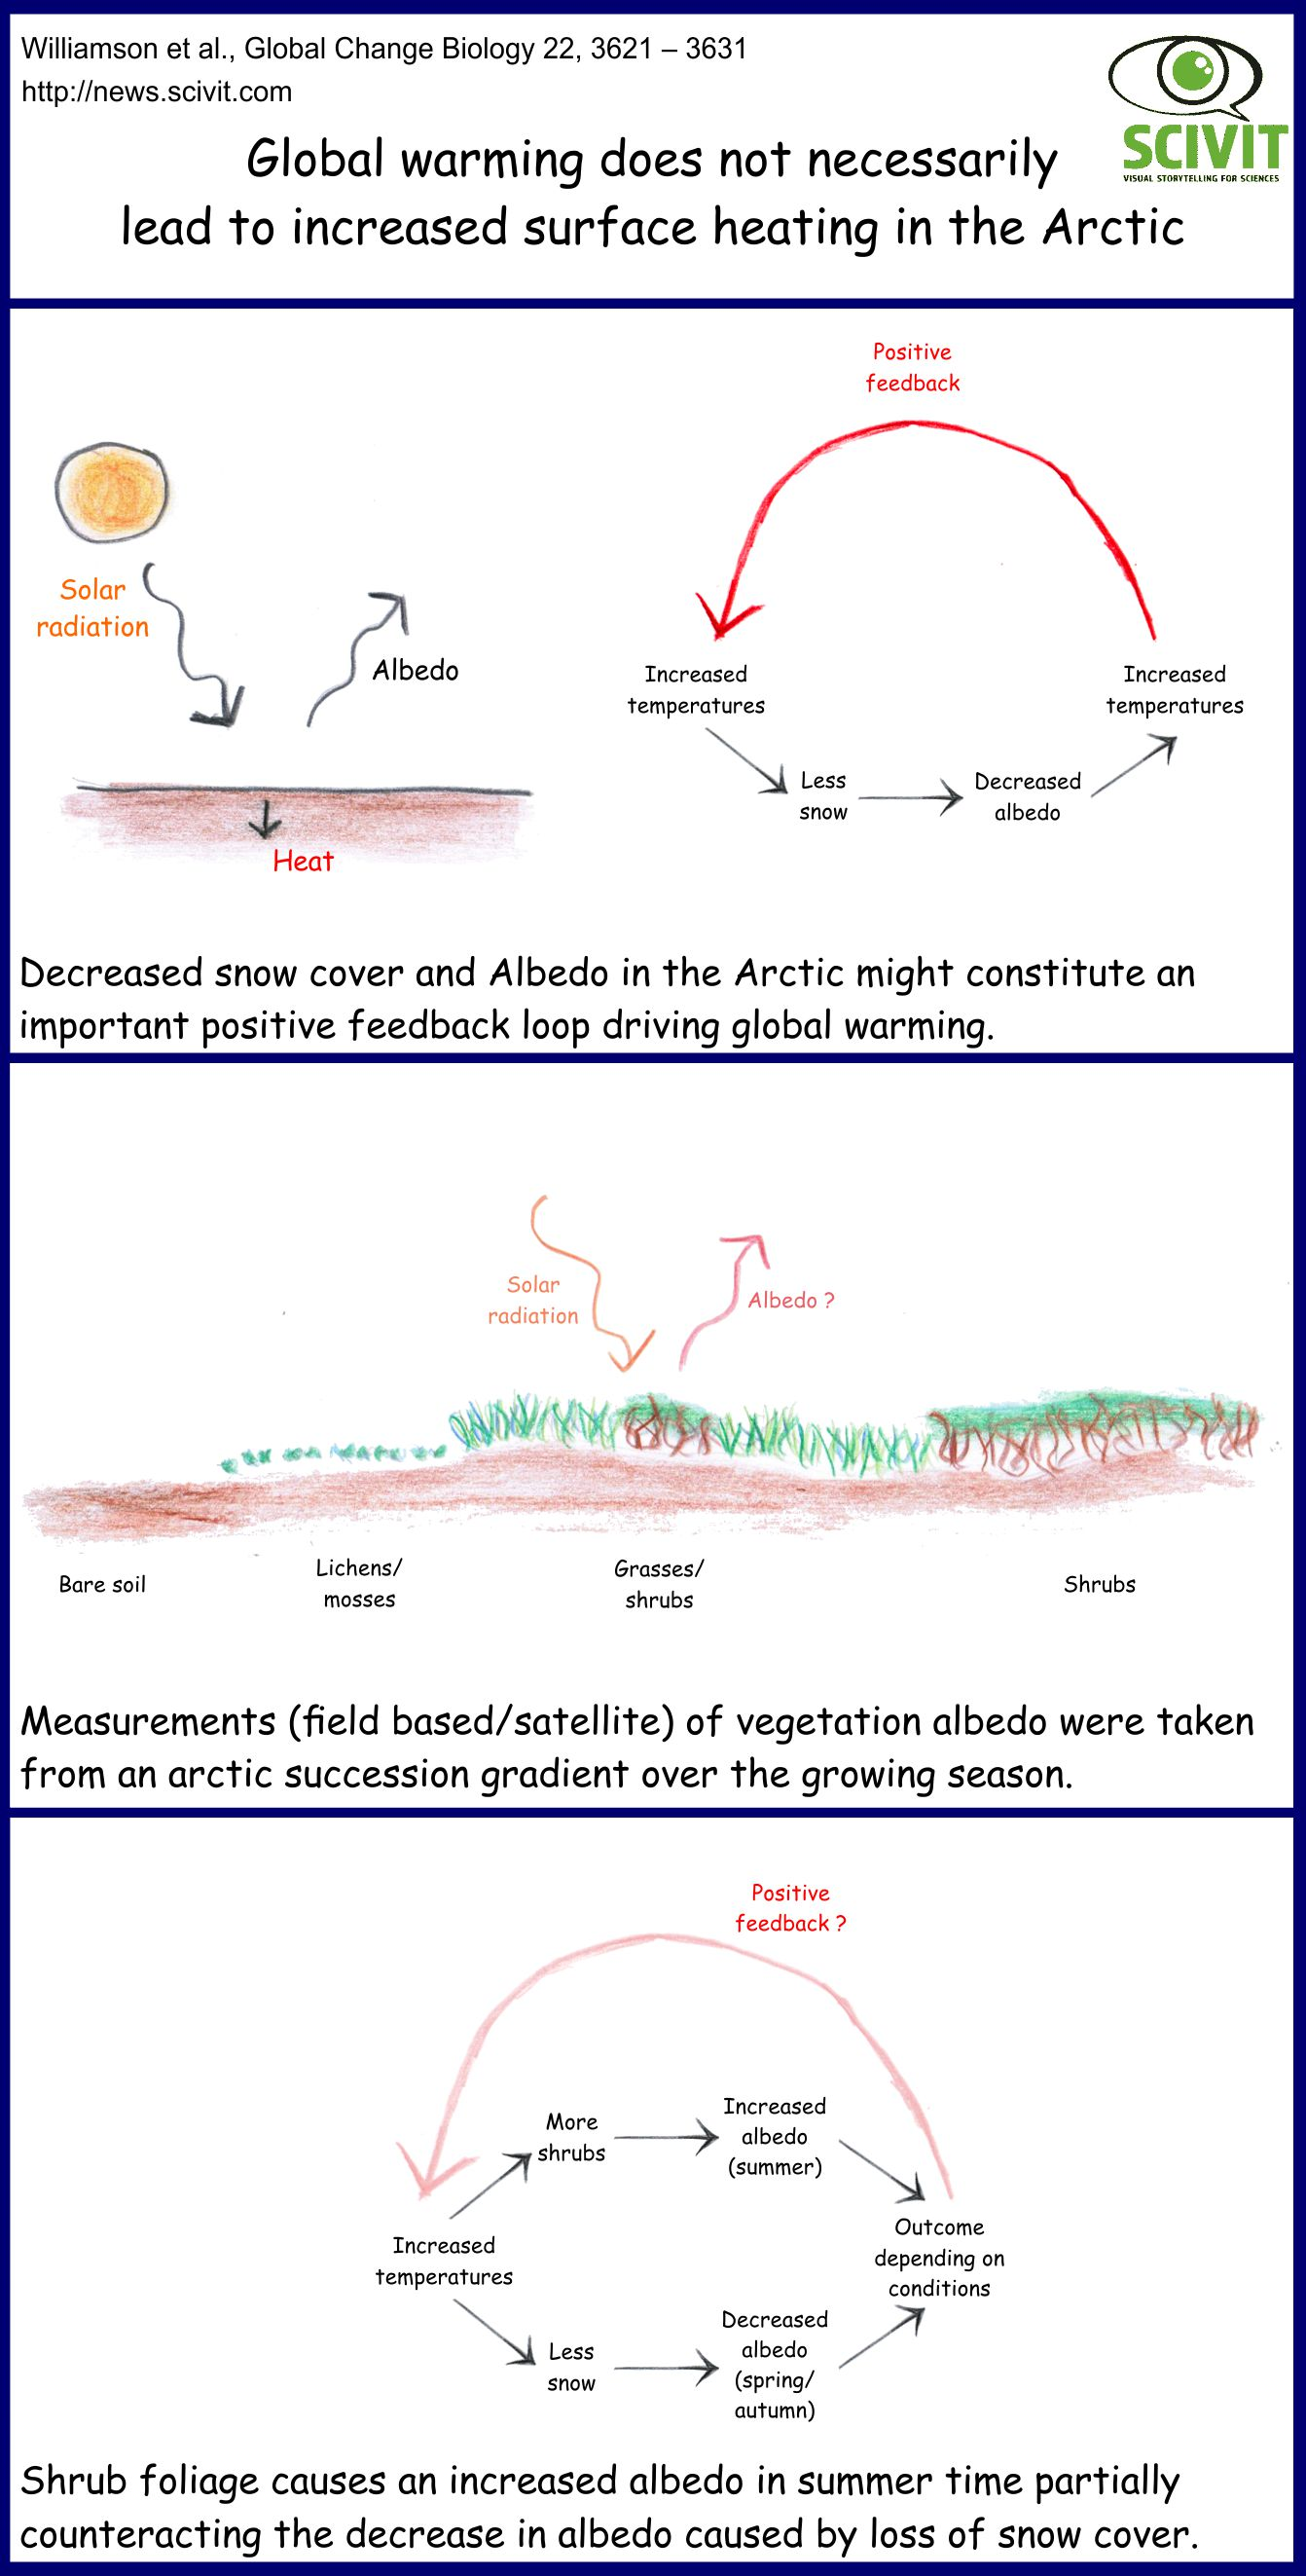 Global warming does not necessarily lead to a decreased arctic albedo